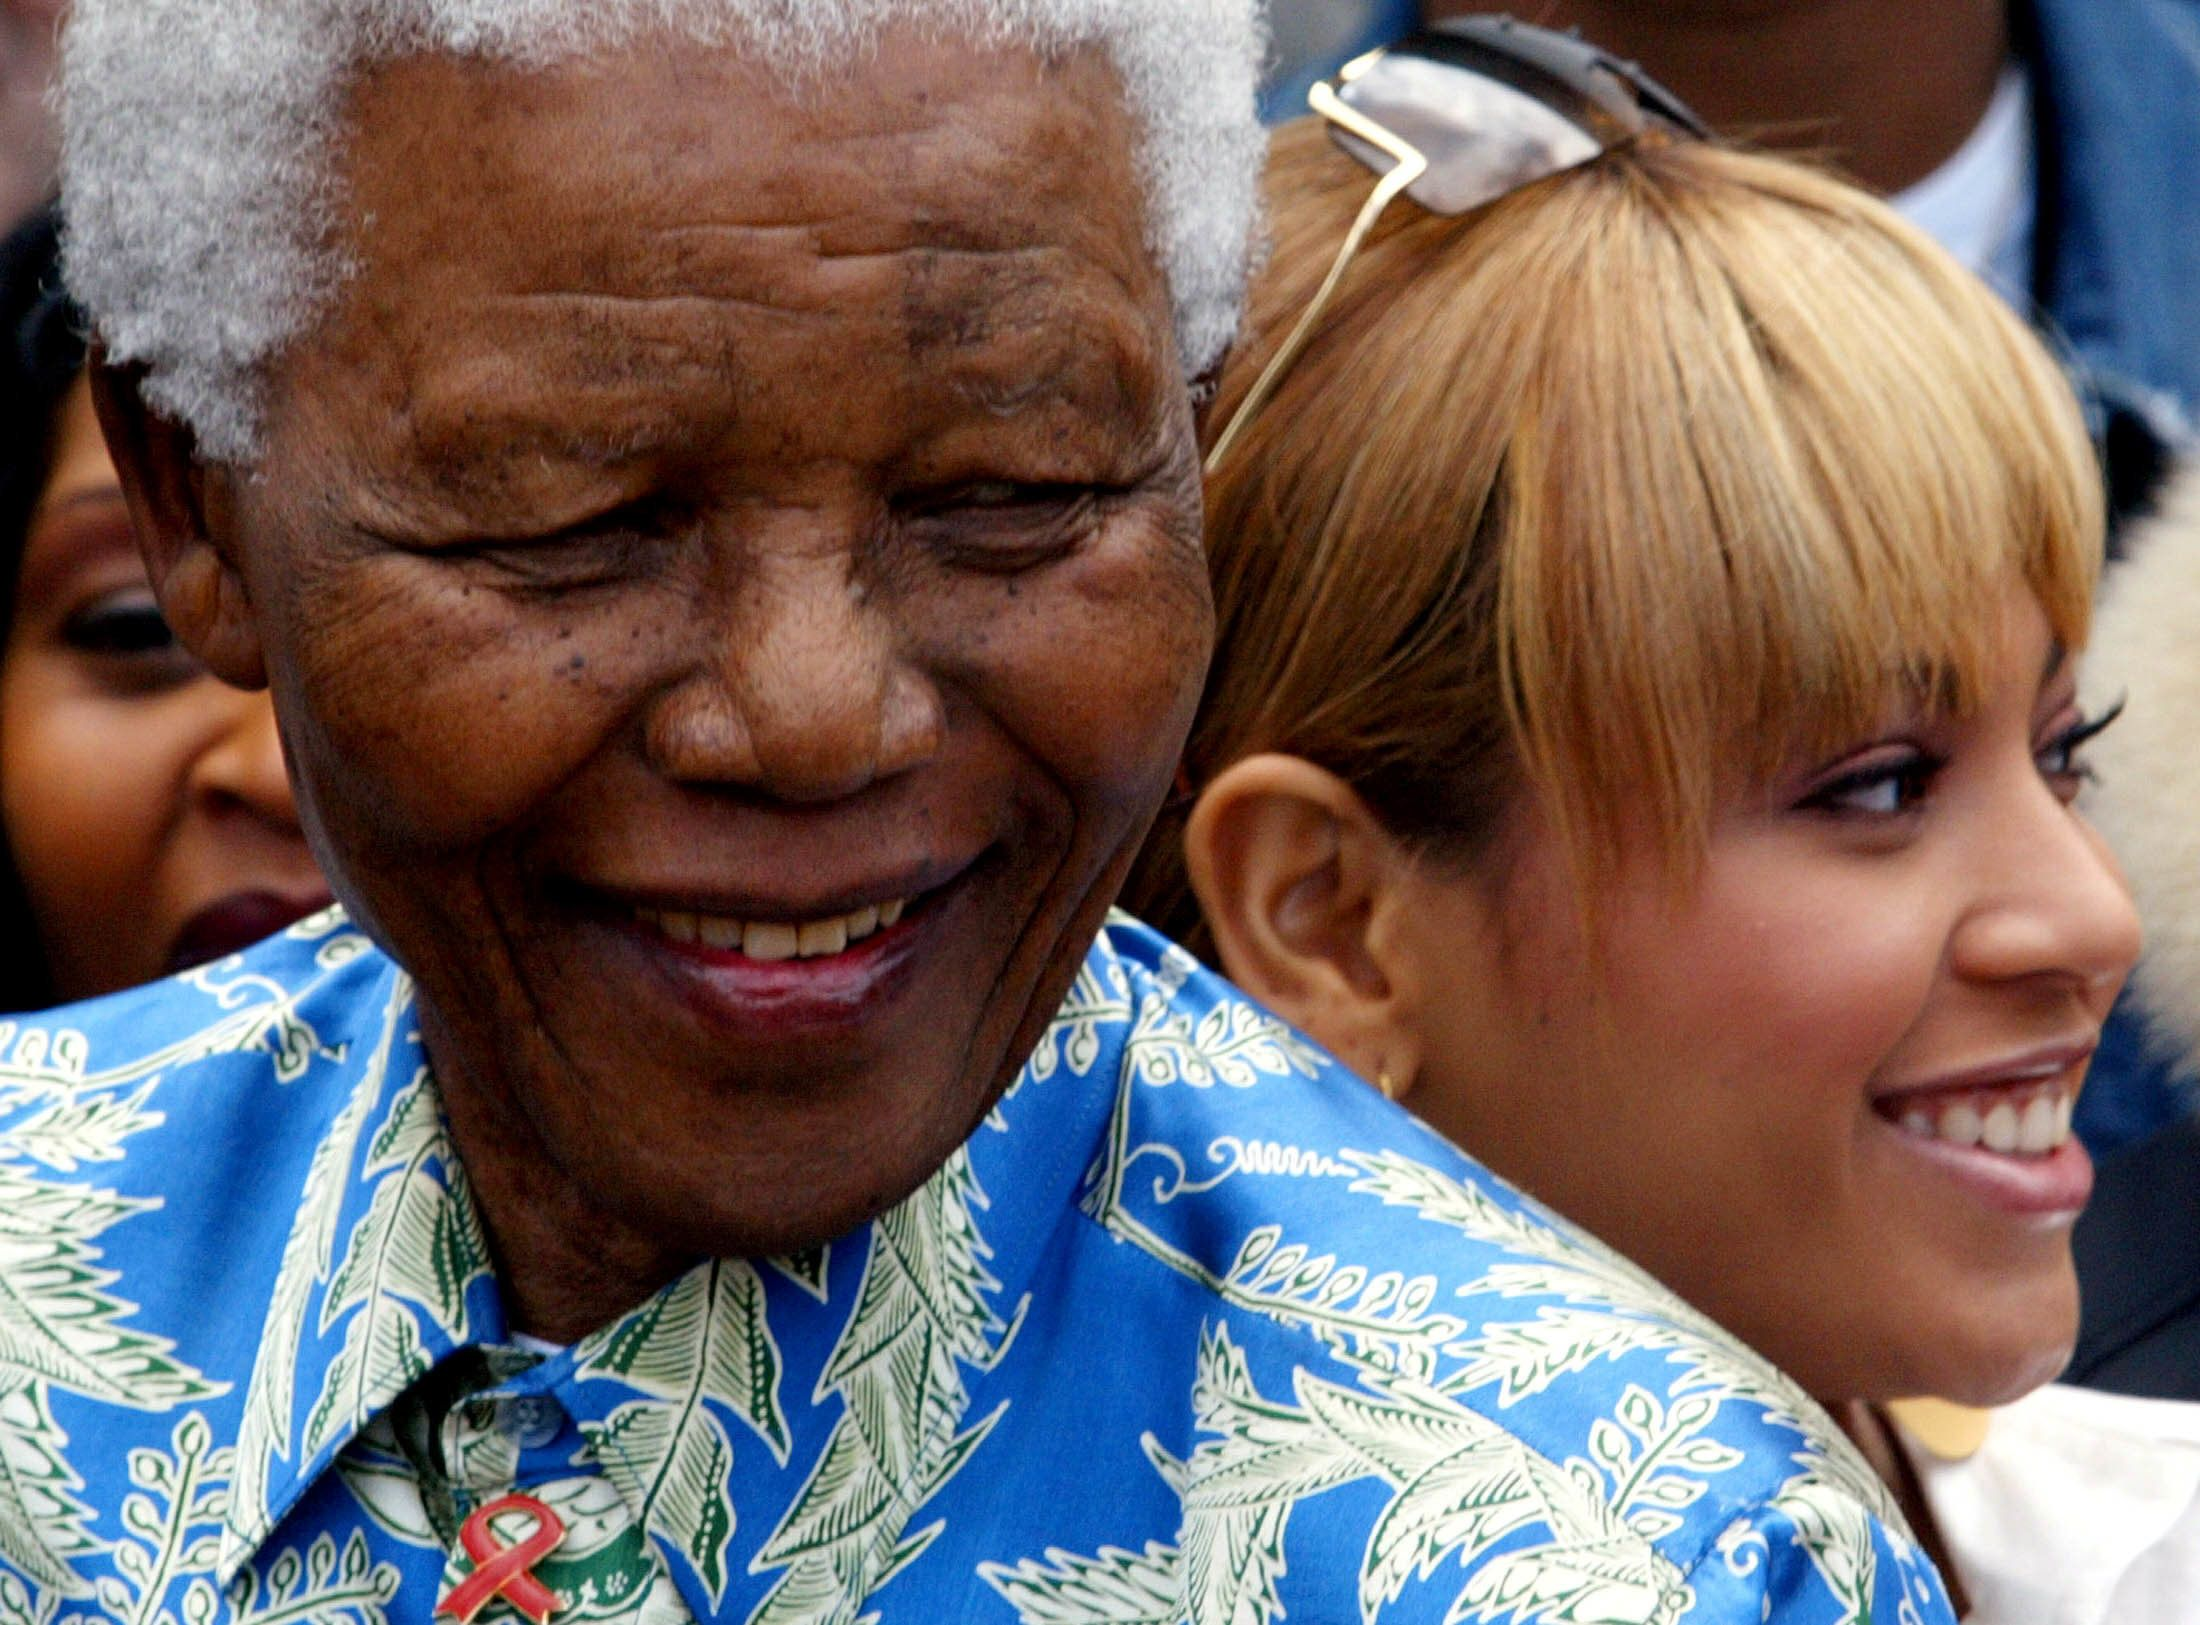 Nelson Mandela andBeyoncé visit Robben Island Prison in Cape Town, South Africa, in 2004.